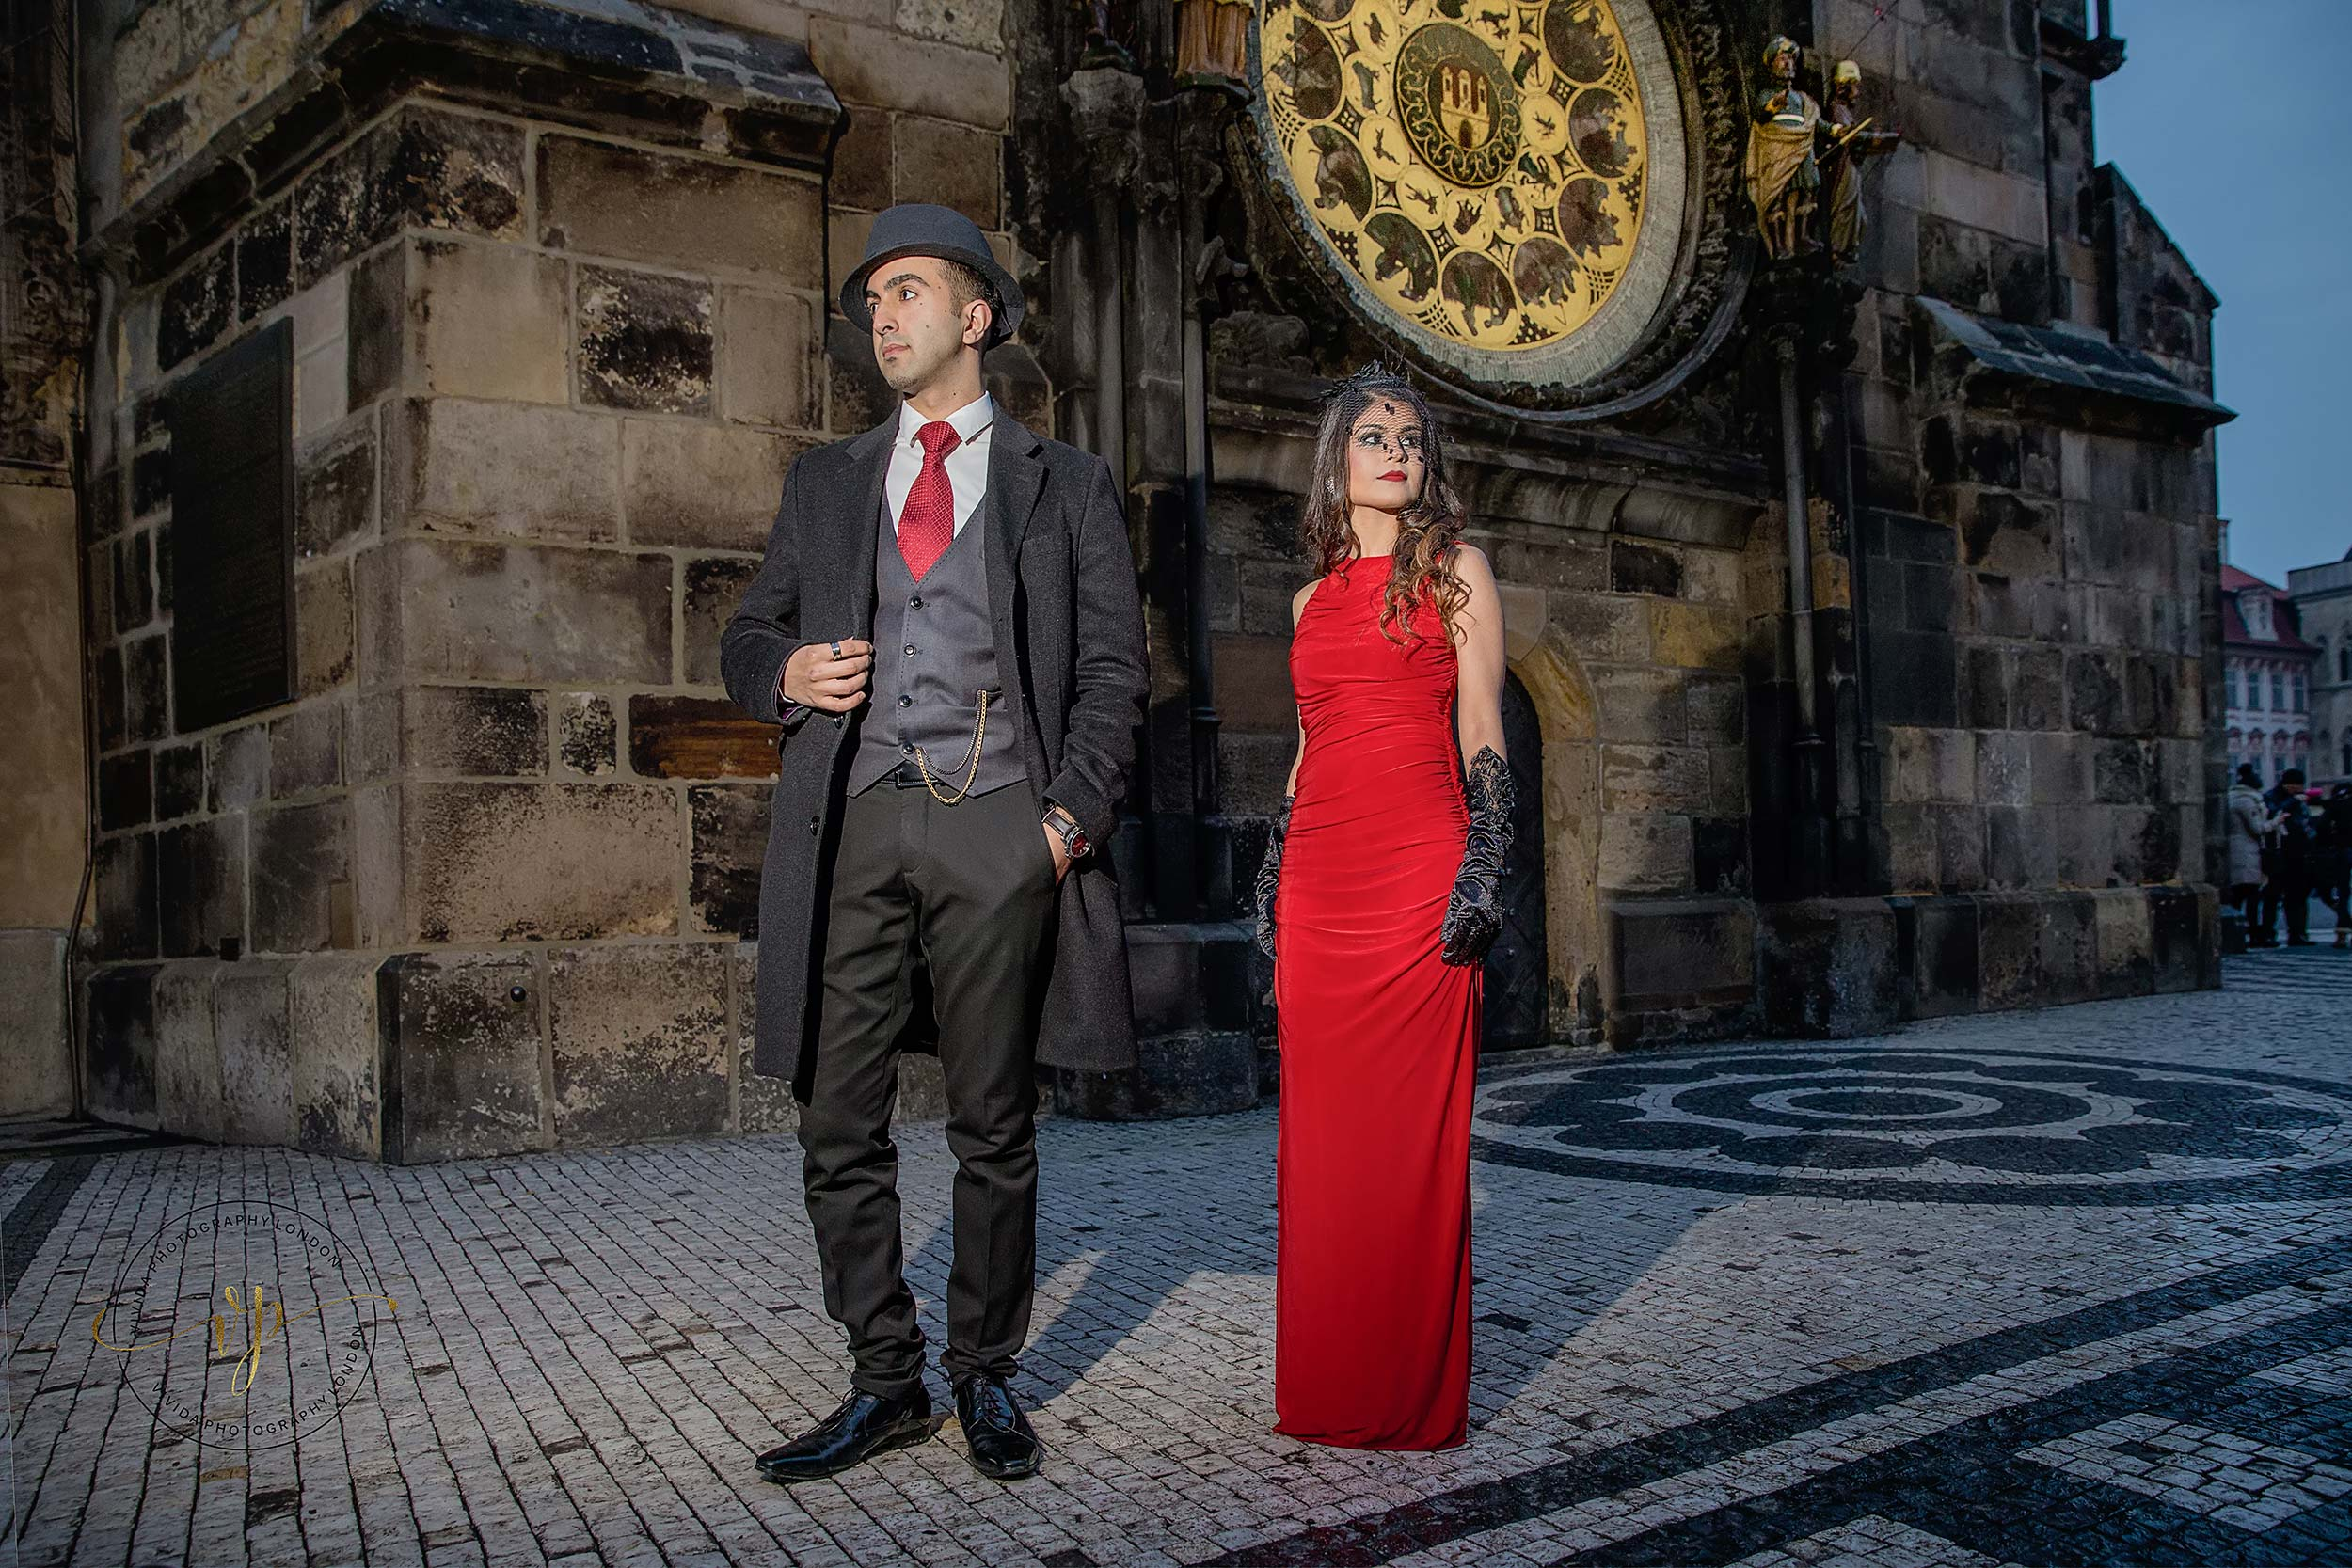 pre+wedding+photography+prague+51.jpg